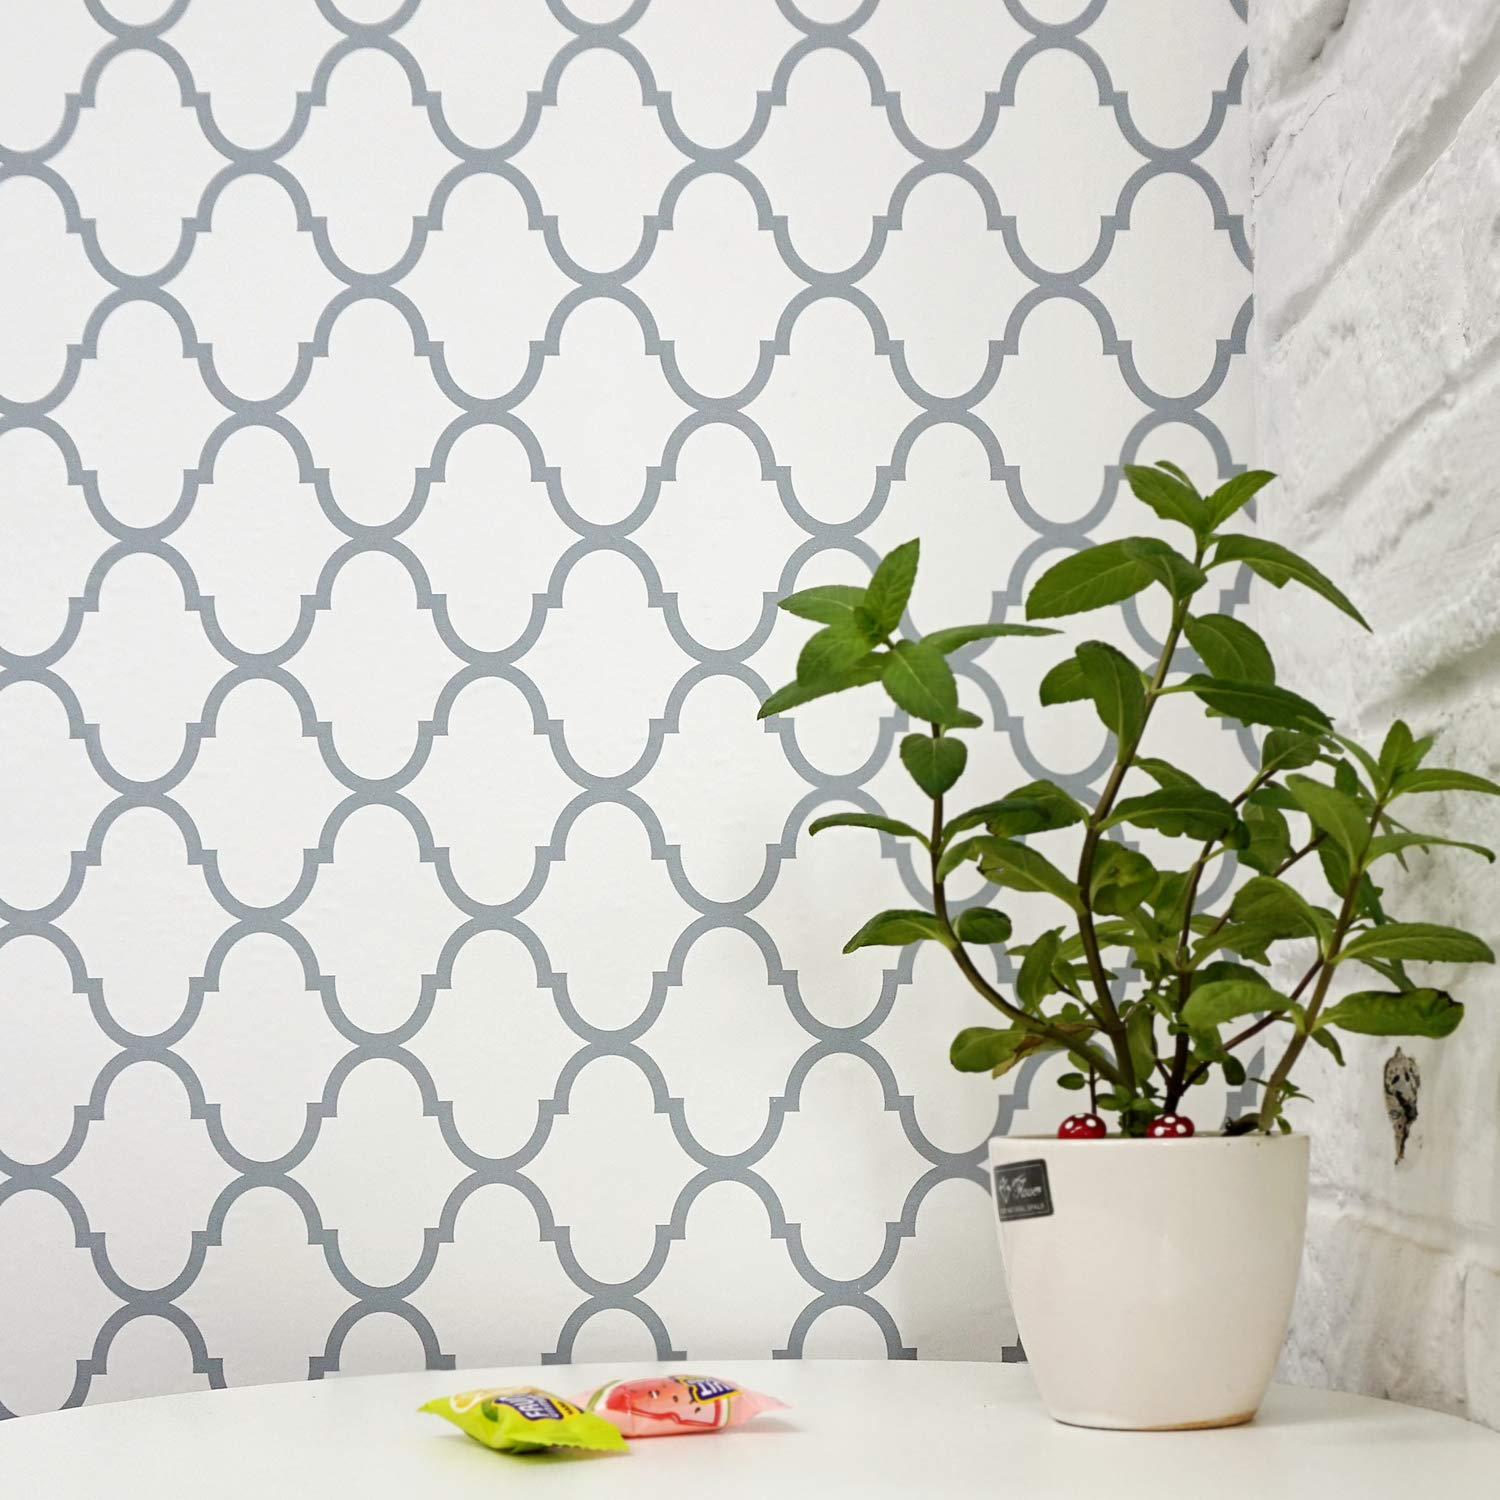 Superb Trellis Removable Wallpaper Trellis Contact Paper Trellis Peel And Stick Wallpaper Self Adhesive Wall Covering Modern Wallpaper Decor Shelf Liner Interior Design Ideas Clesiryabchikinfo